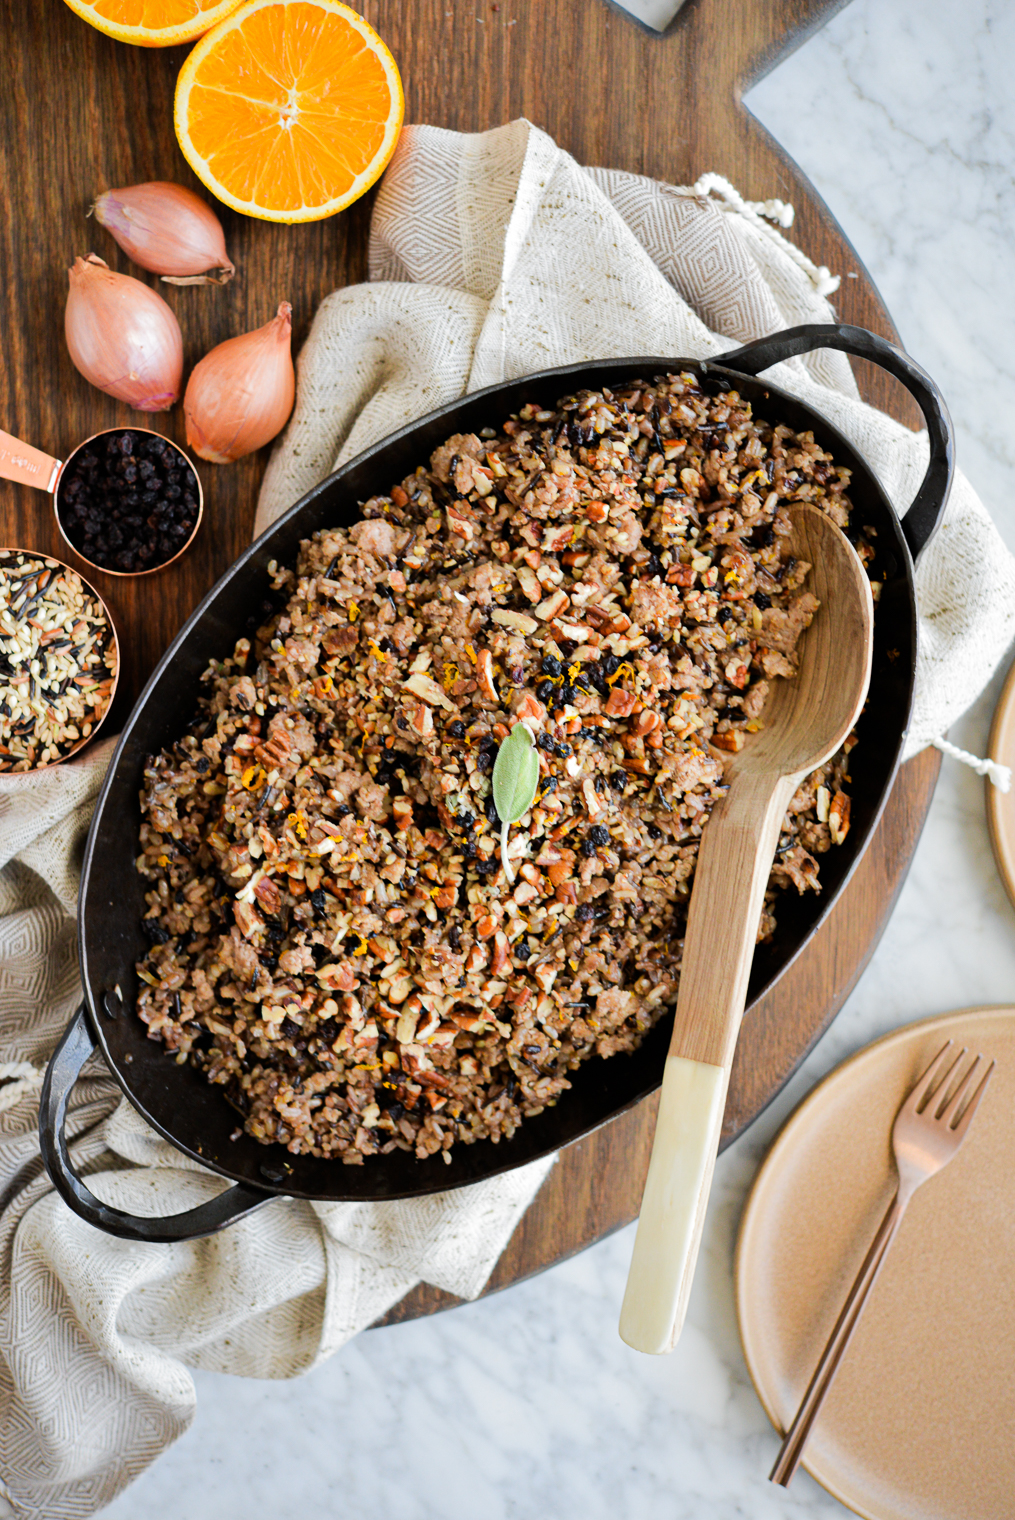 a dish of wild rice stuffing sitting on a wood board next to a halved orange, and whole shallots